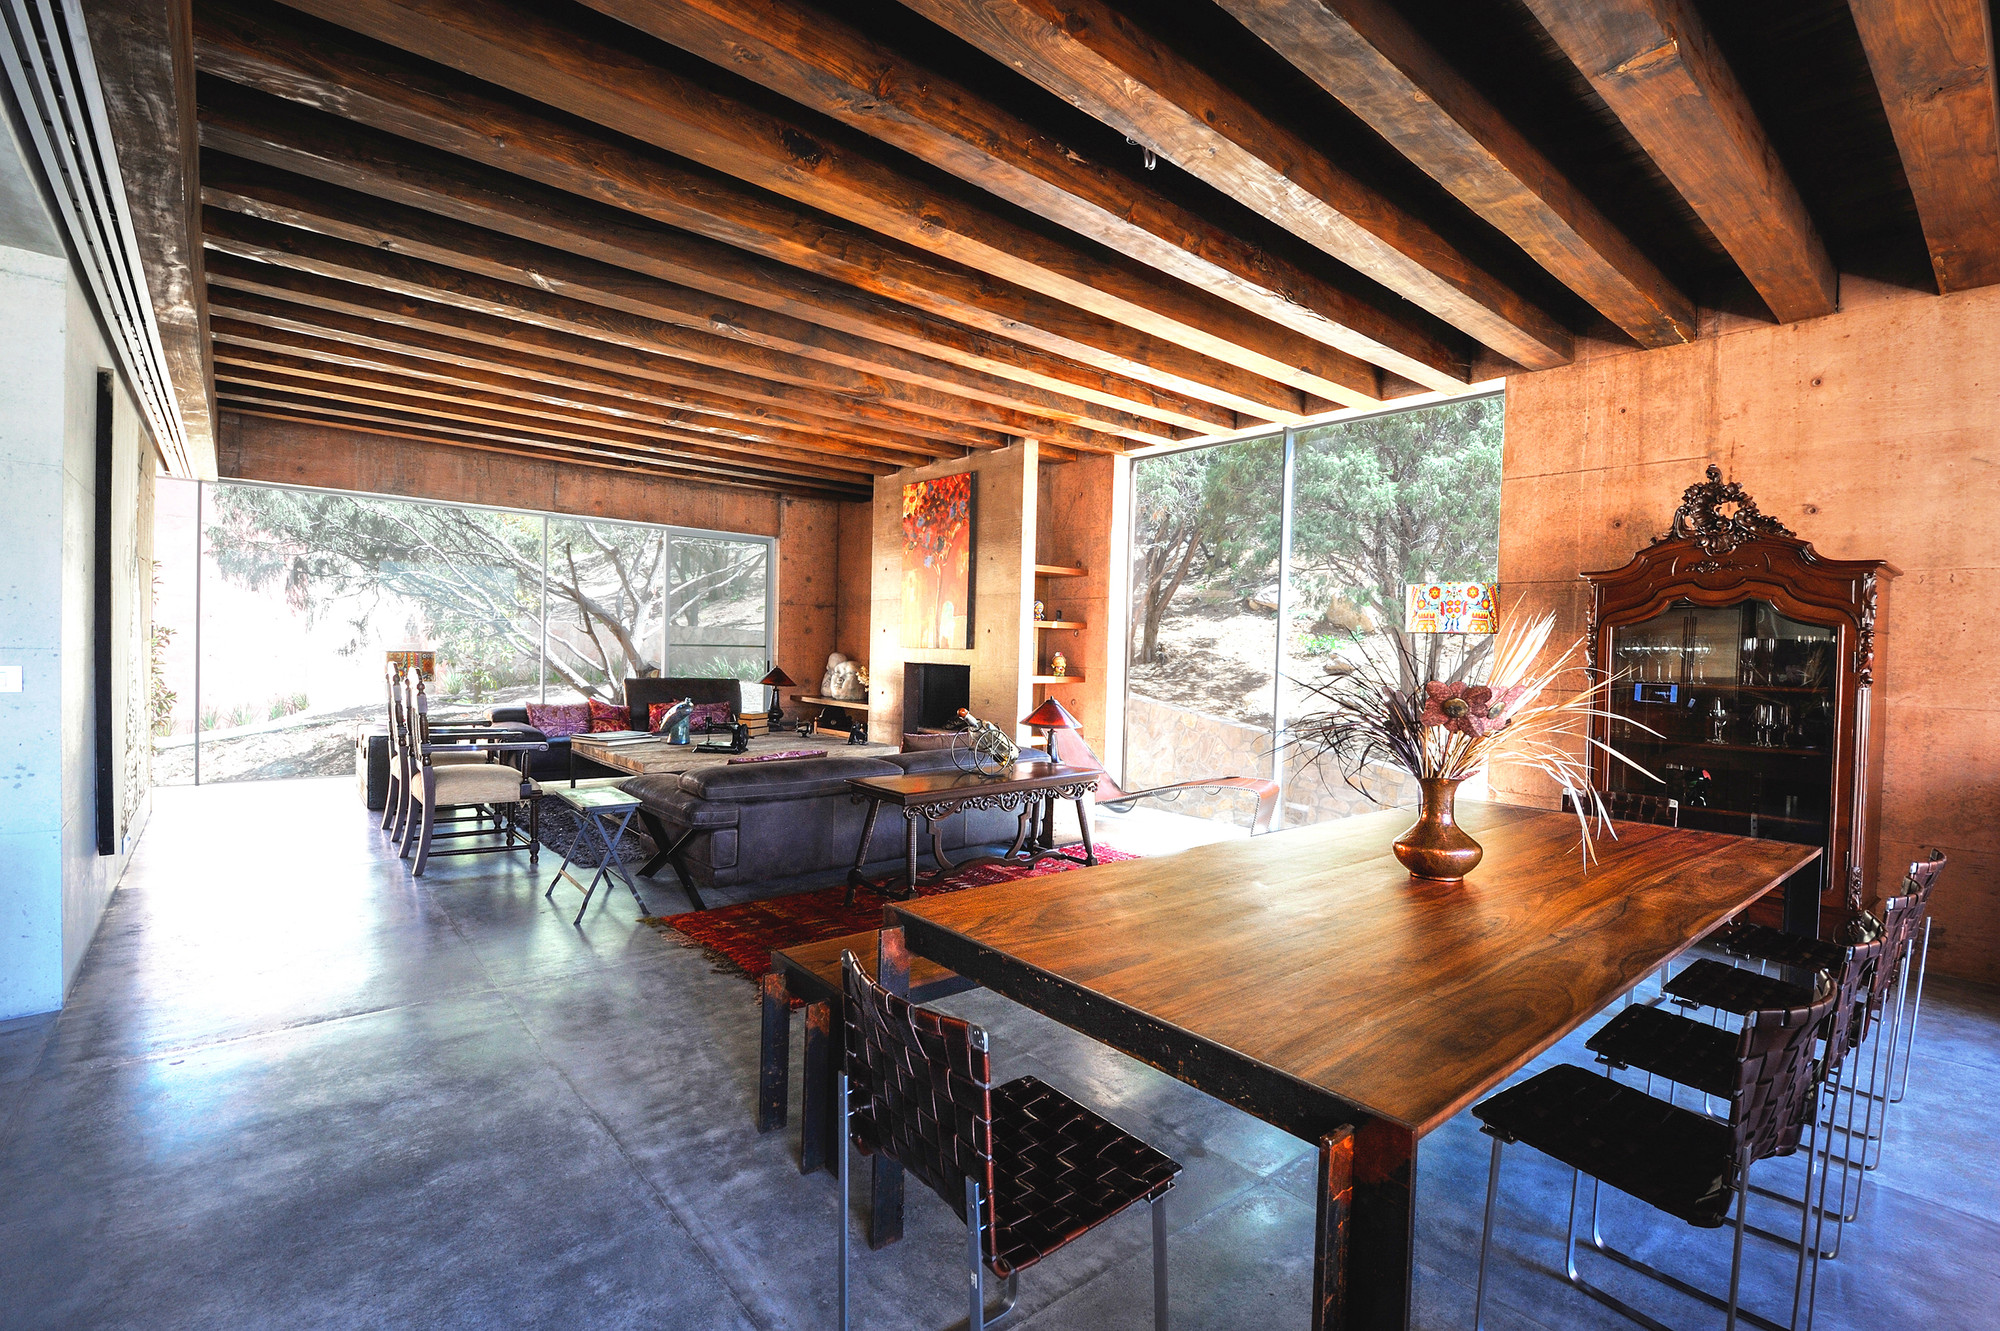 The Contemporary Narigua House in Mexico by P0 Architecture